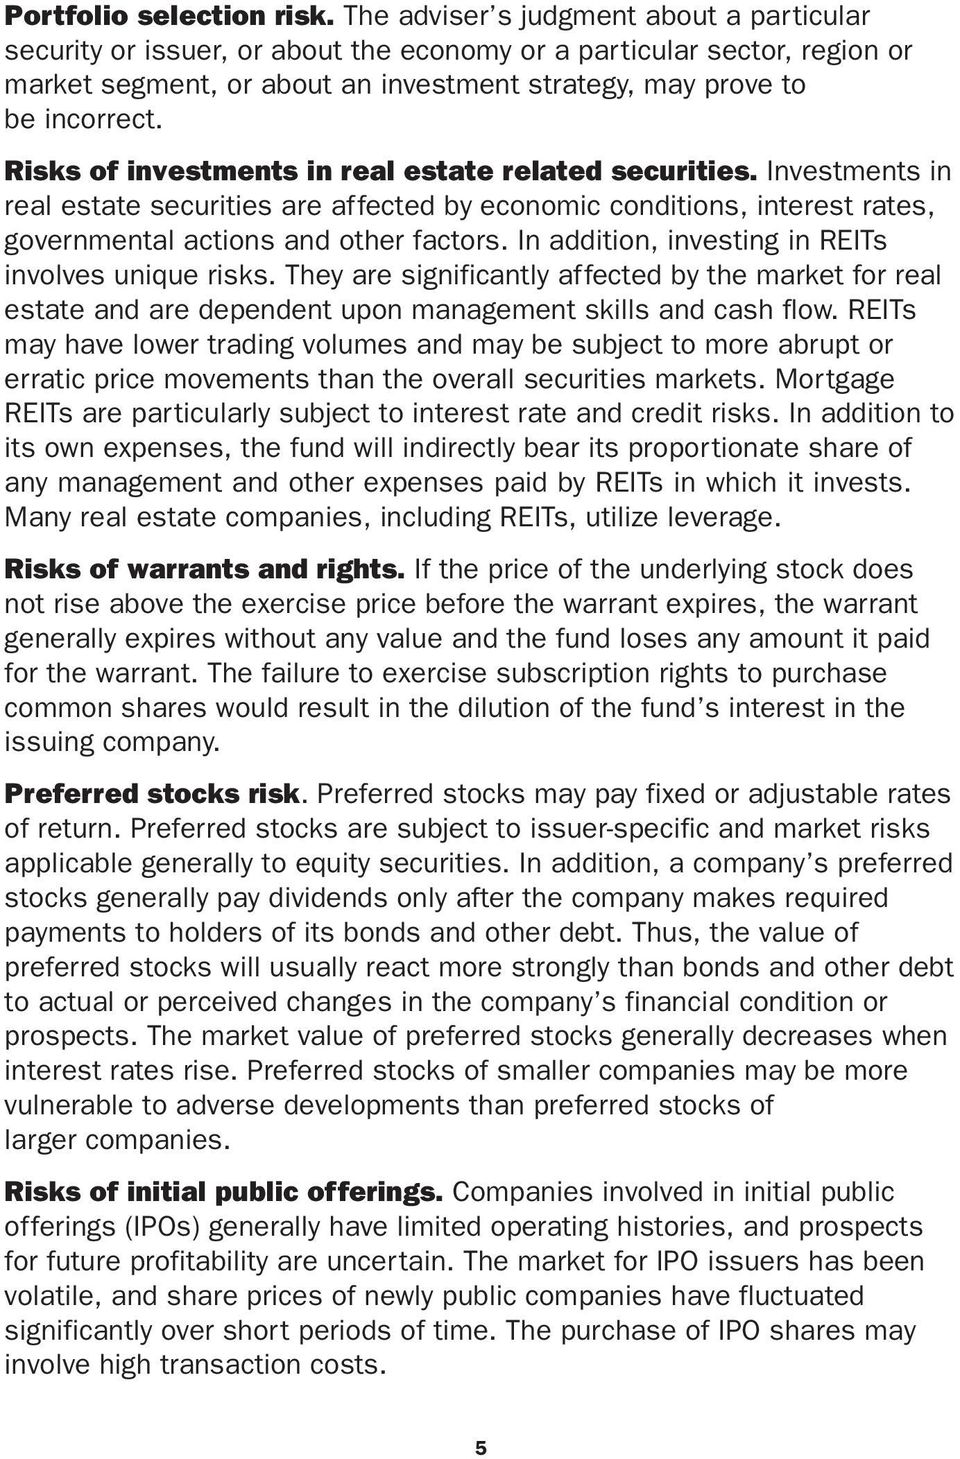 Risks of investments in real estate related securities. Investments in real estate securities are affected by economic conditions, interest rates, governmental actions and other factors.